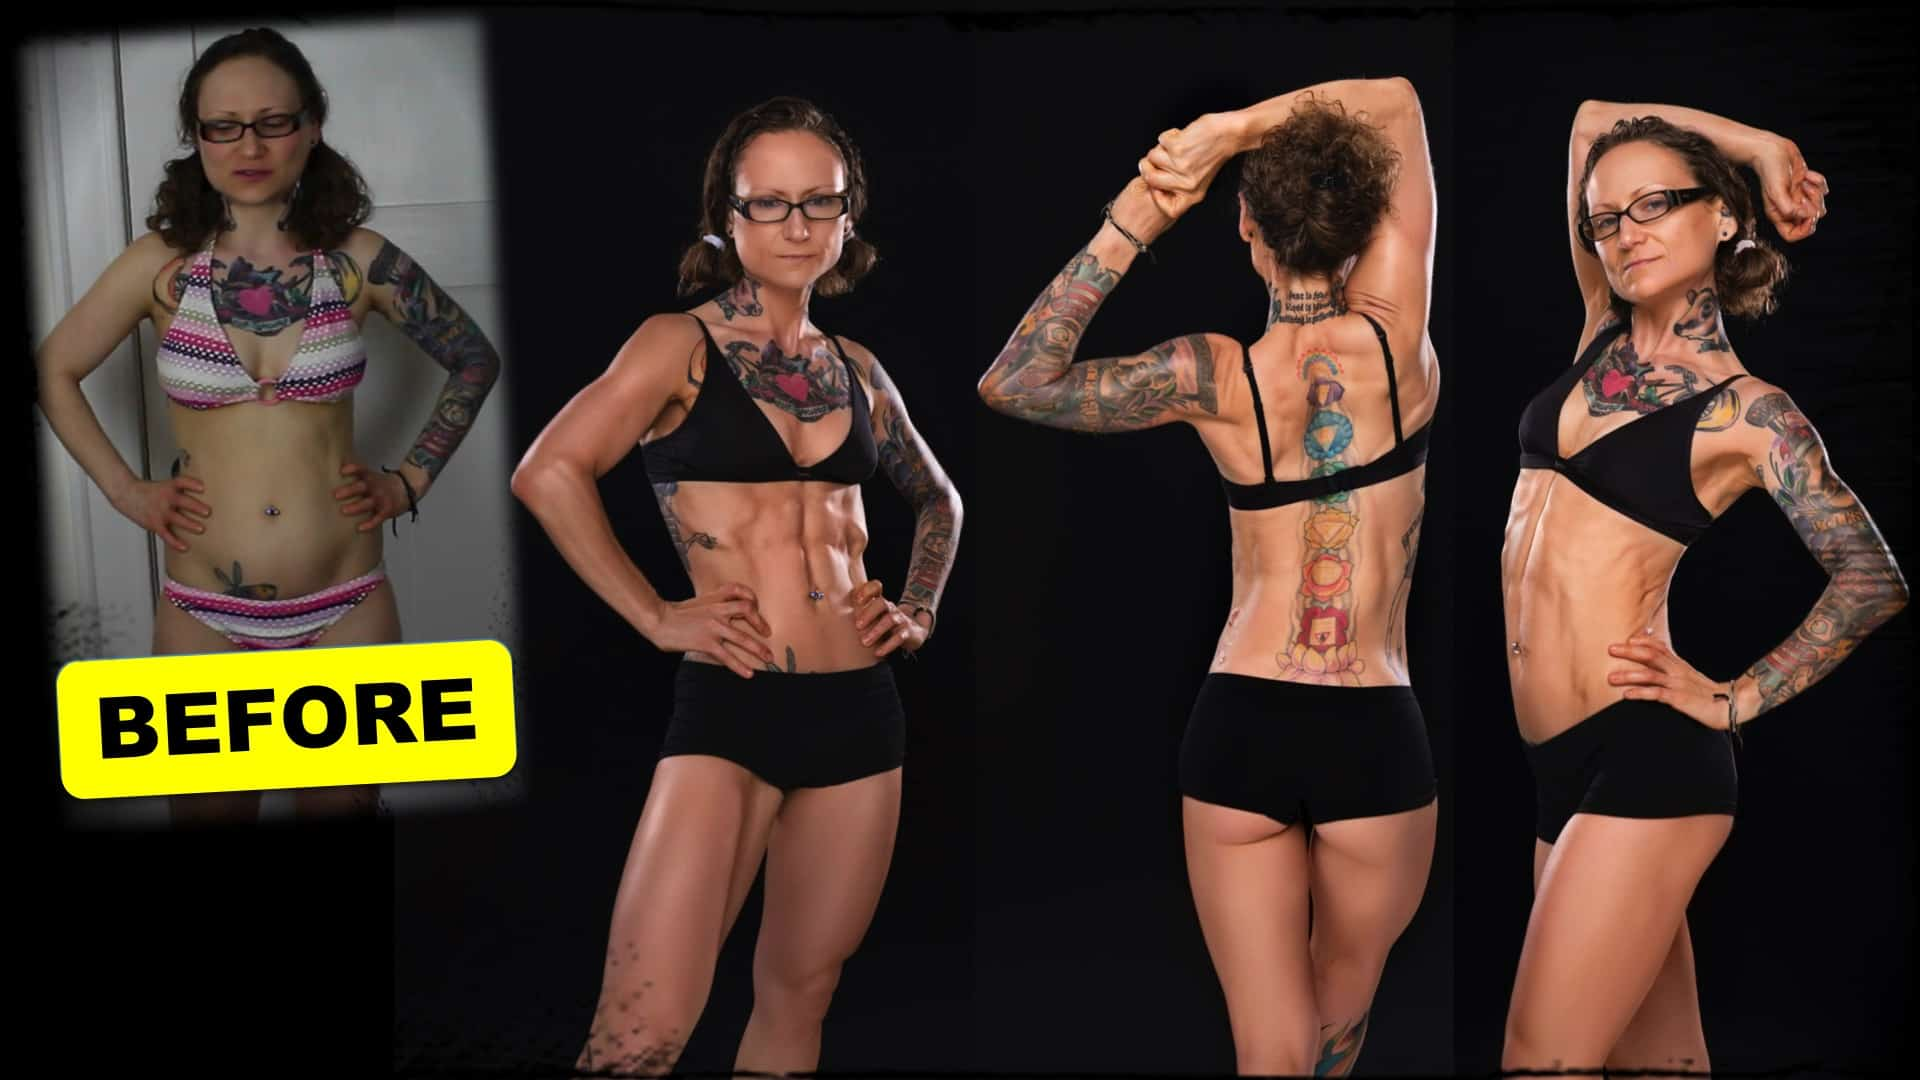 """Emily Moran Barwick of Bite Size Vegan is shown four times from her knees upward. The first image shows Emily in a bikini with the word """"before"""" below it. Emily is reasonably toned but does not display hard muscle. The other three images are similar in nature. In each, a later version of Emily is shown in a bodybuilding pose. Her magnificent physique is displayed to its best effect. Her muscles are hard and well defined."""